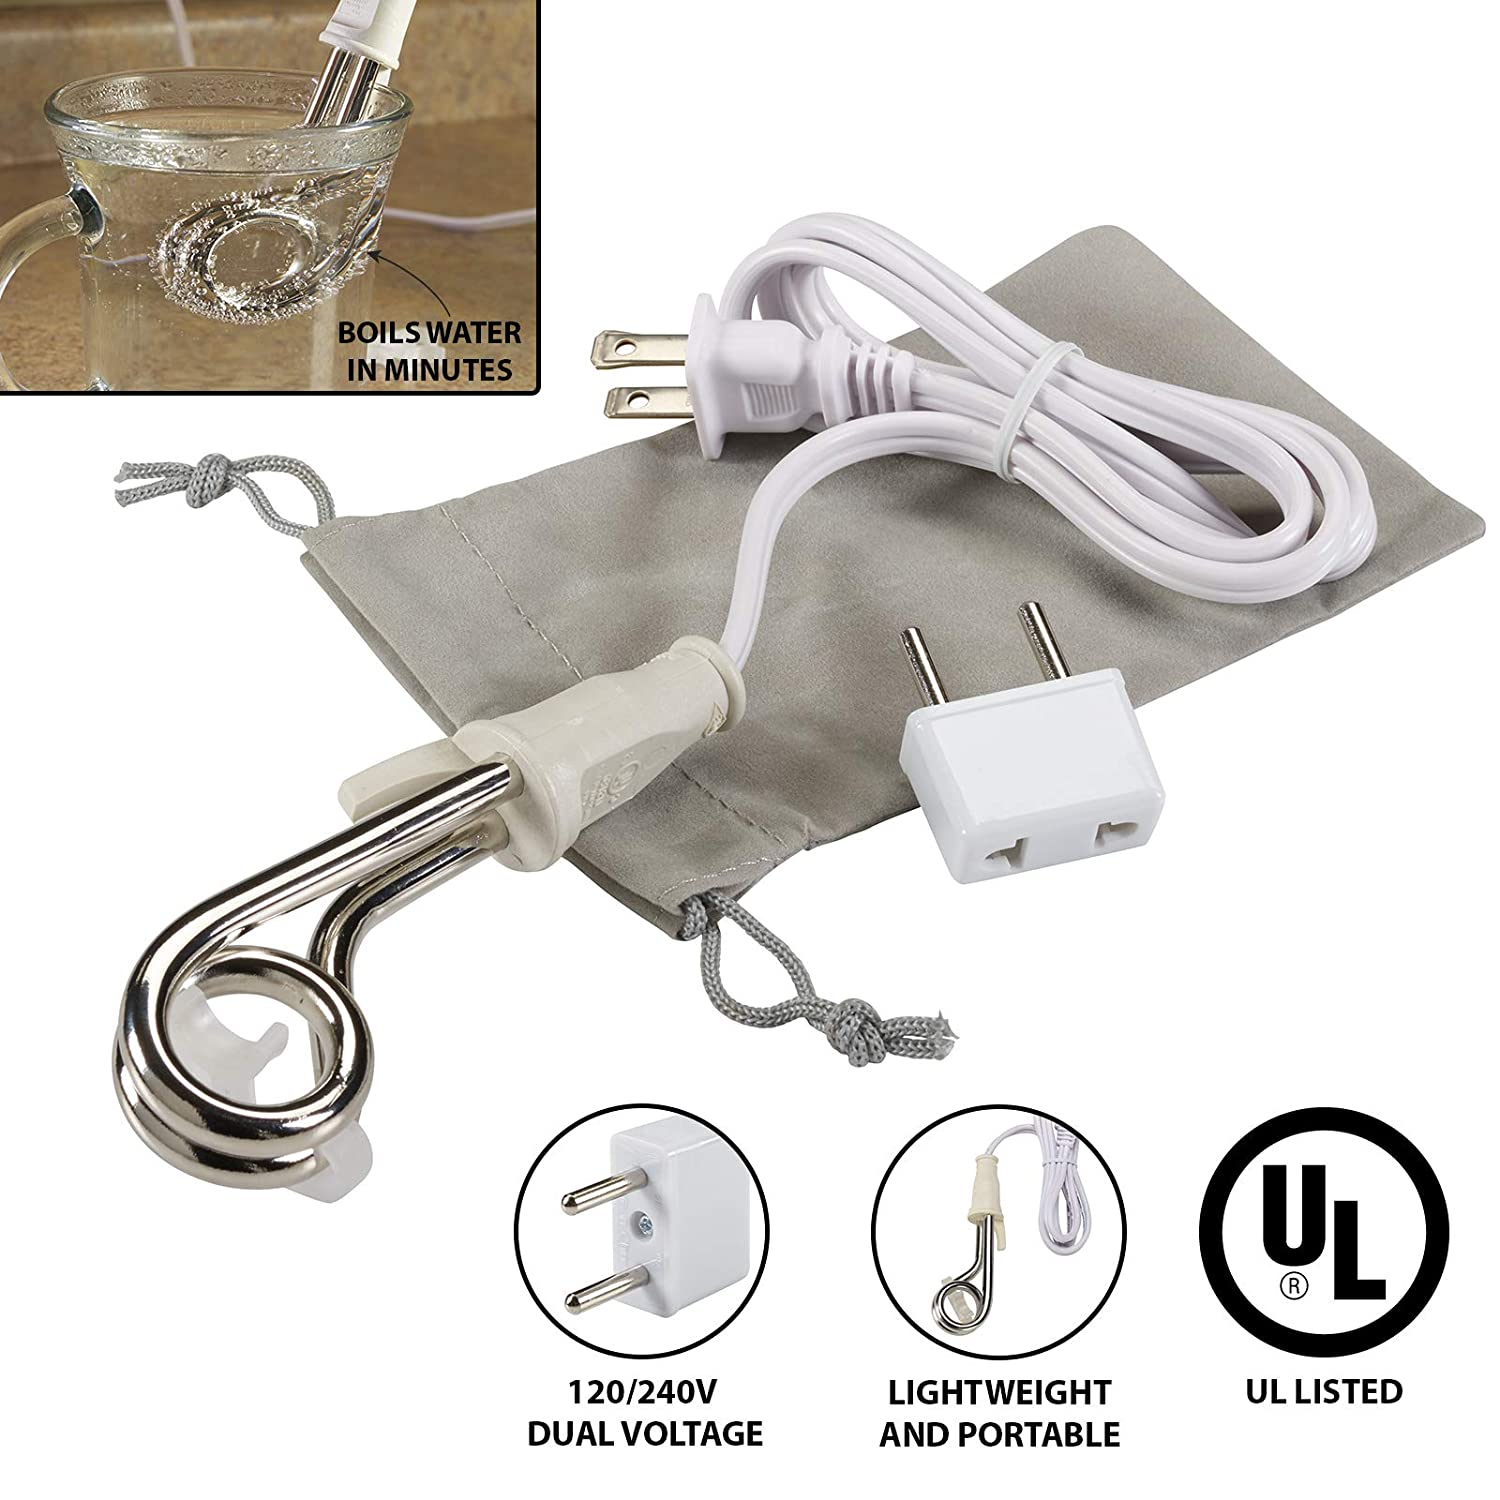 Lewis N. Clark Immersion Heater for Boiling Water (Portable + Better than Electric Kettle): Heat Coffee, Tea, or Hot Chocolate in Minutes for Camping, Travel + Office Use with Included Travel Adapter